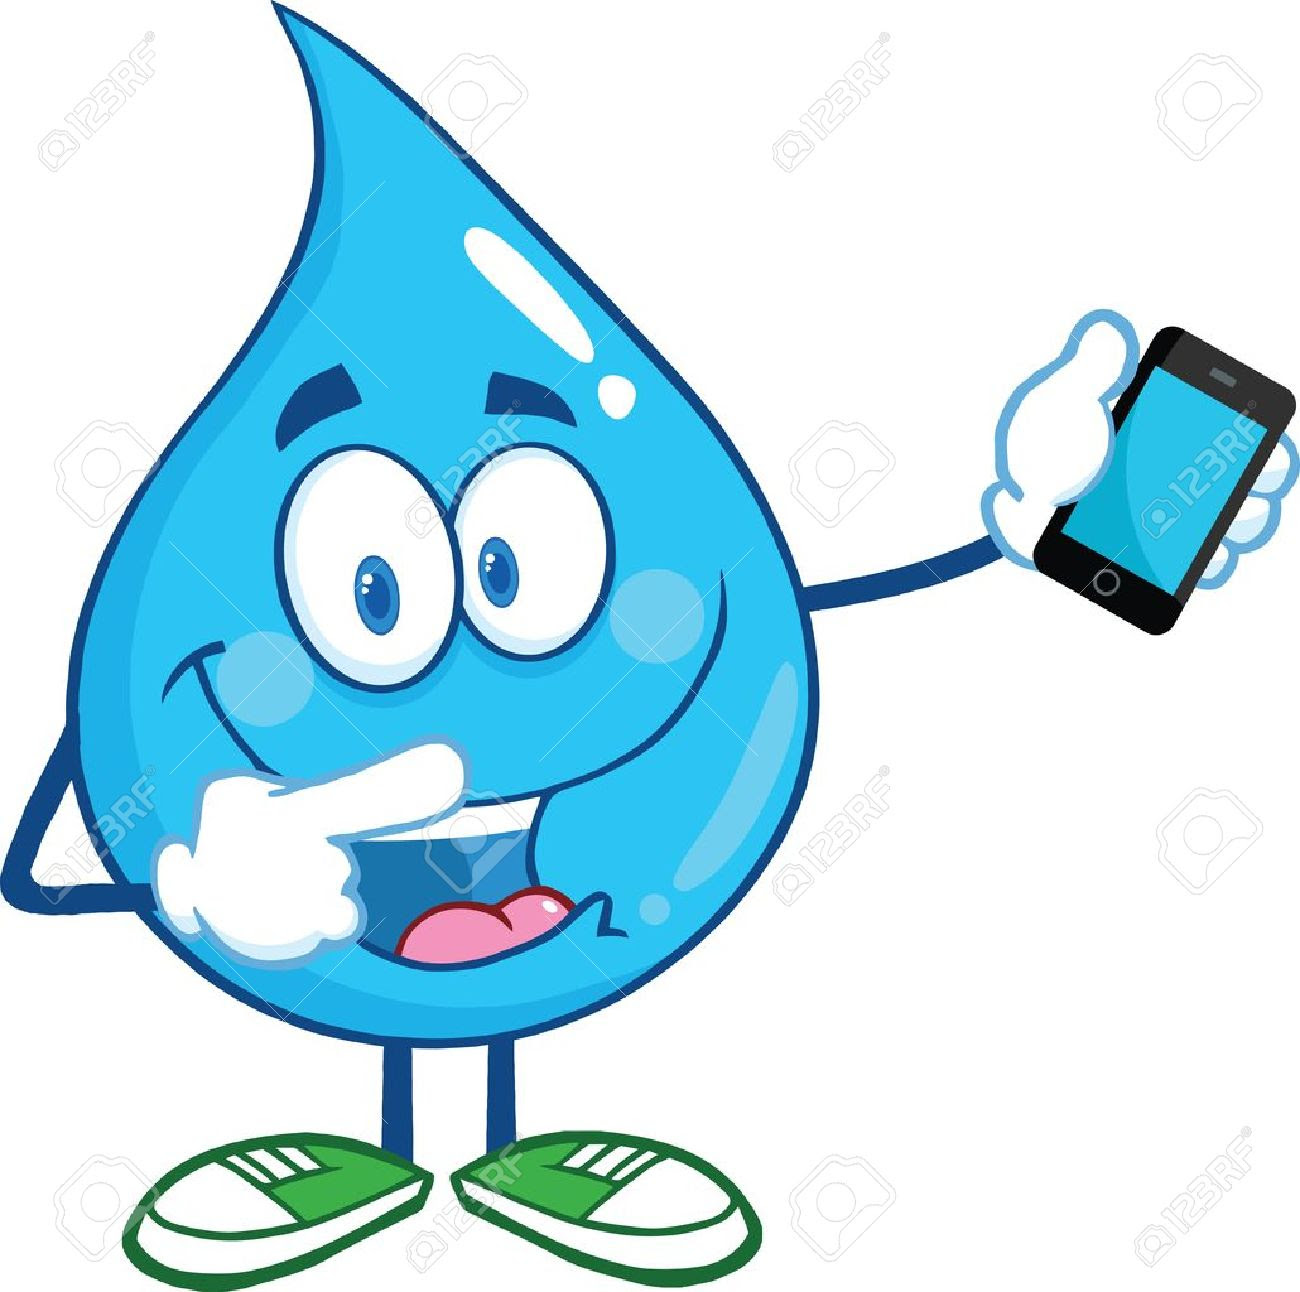 Image result for cartoon images of drop phone